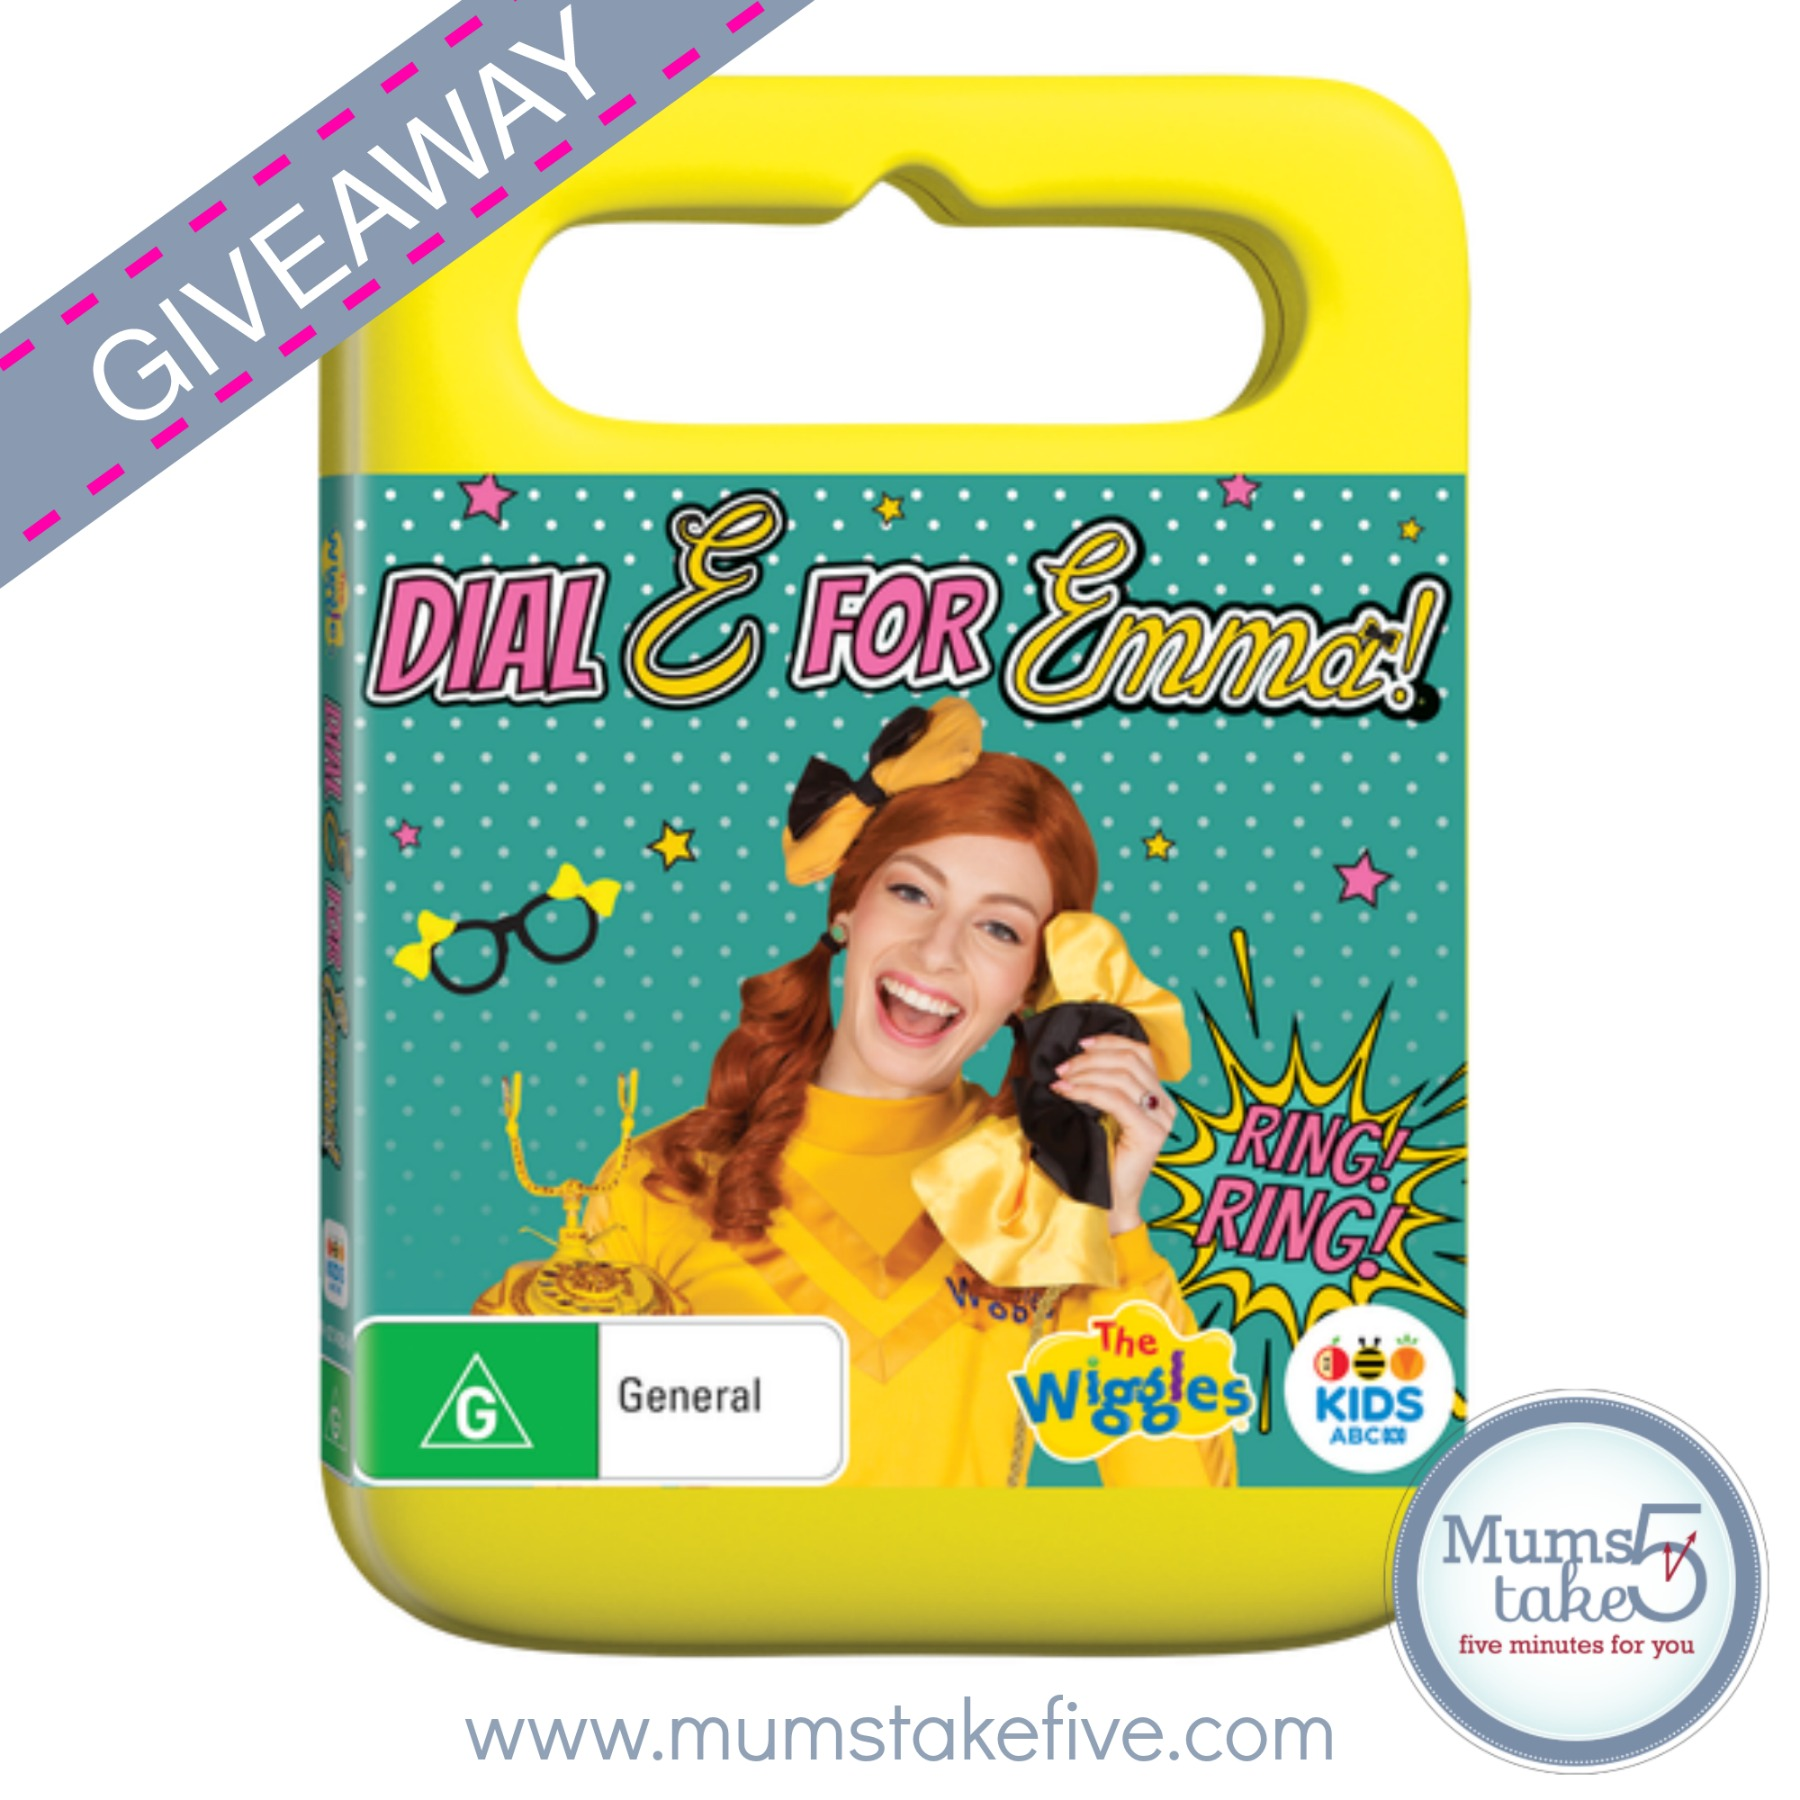 Emma Wiggles DVD GIveaway